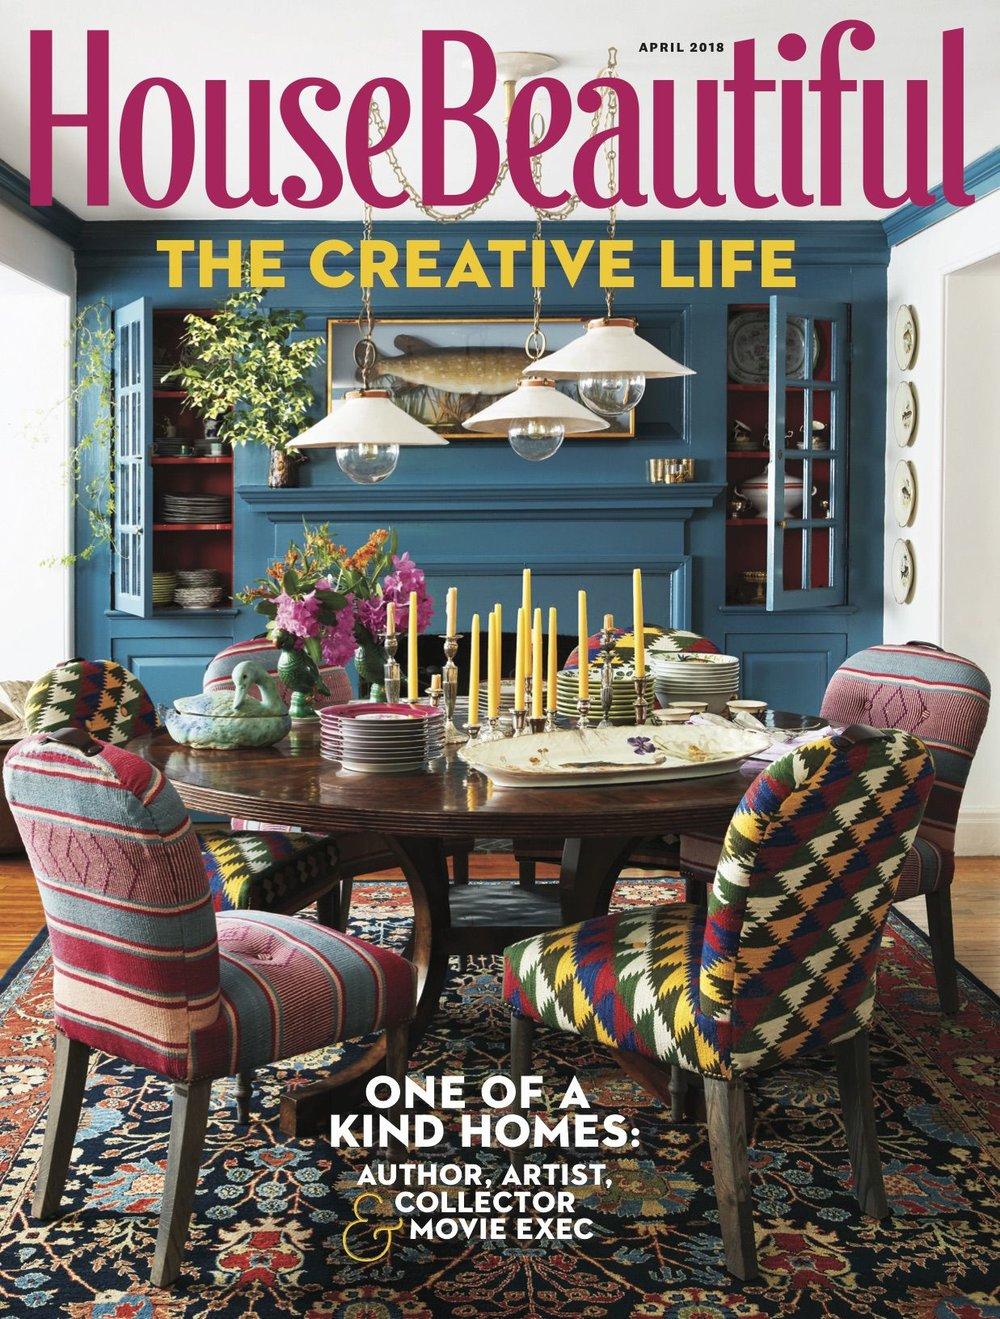 2018-April-Housebeautiful-Thumb.jpg